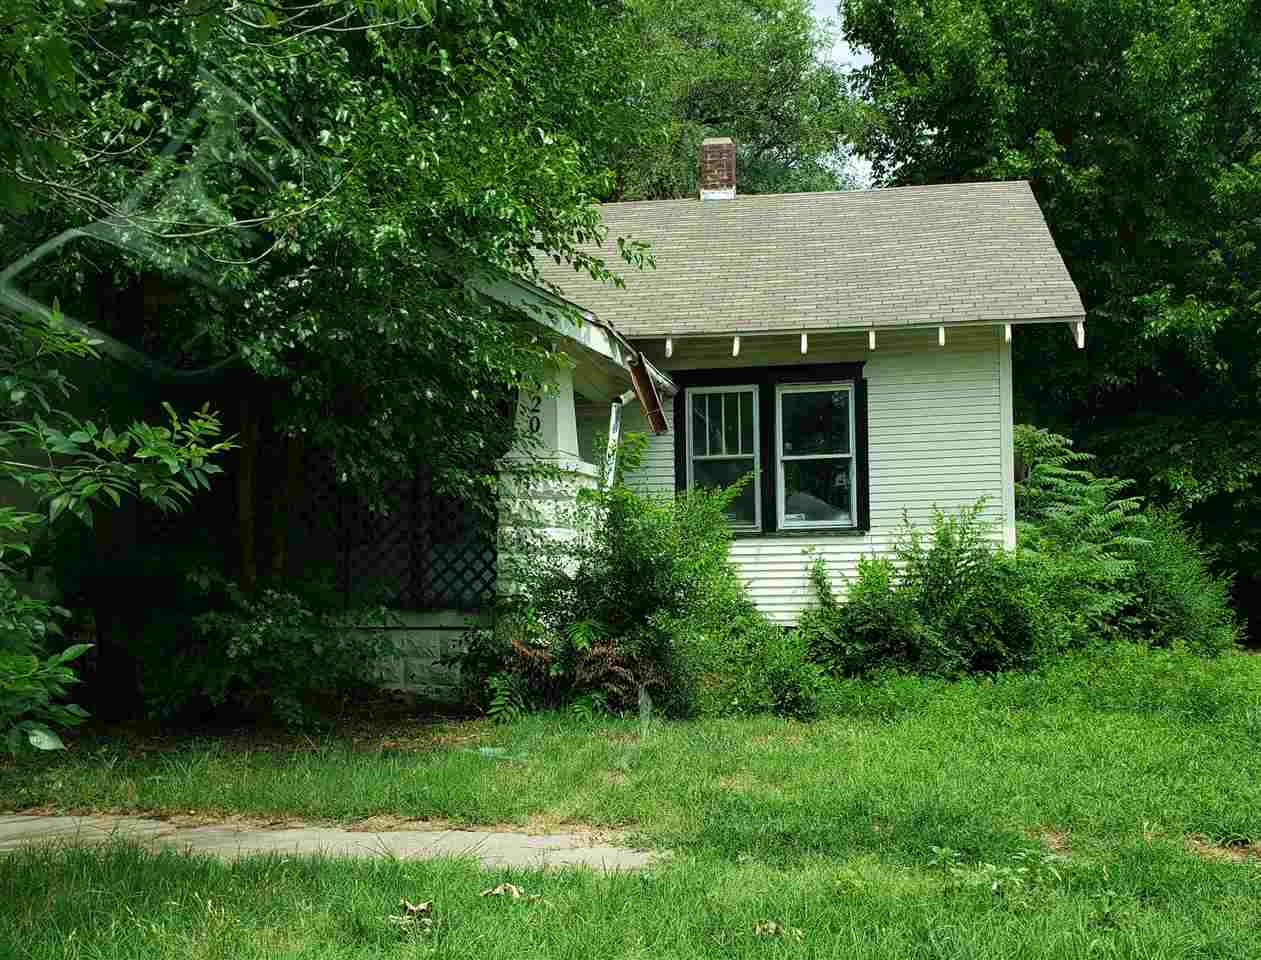 Home is sold AS IS. Seller is not to make any repairs. All information deemed reliable but not guara